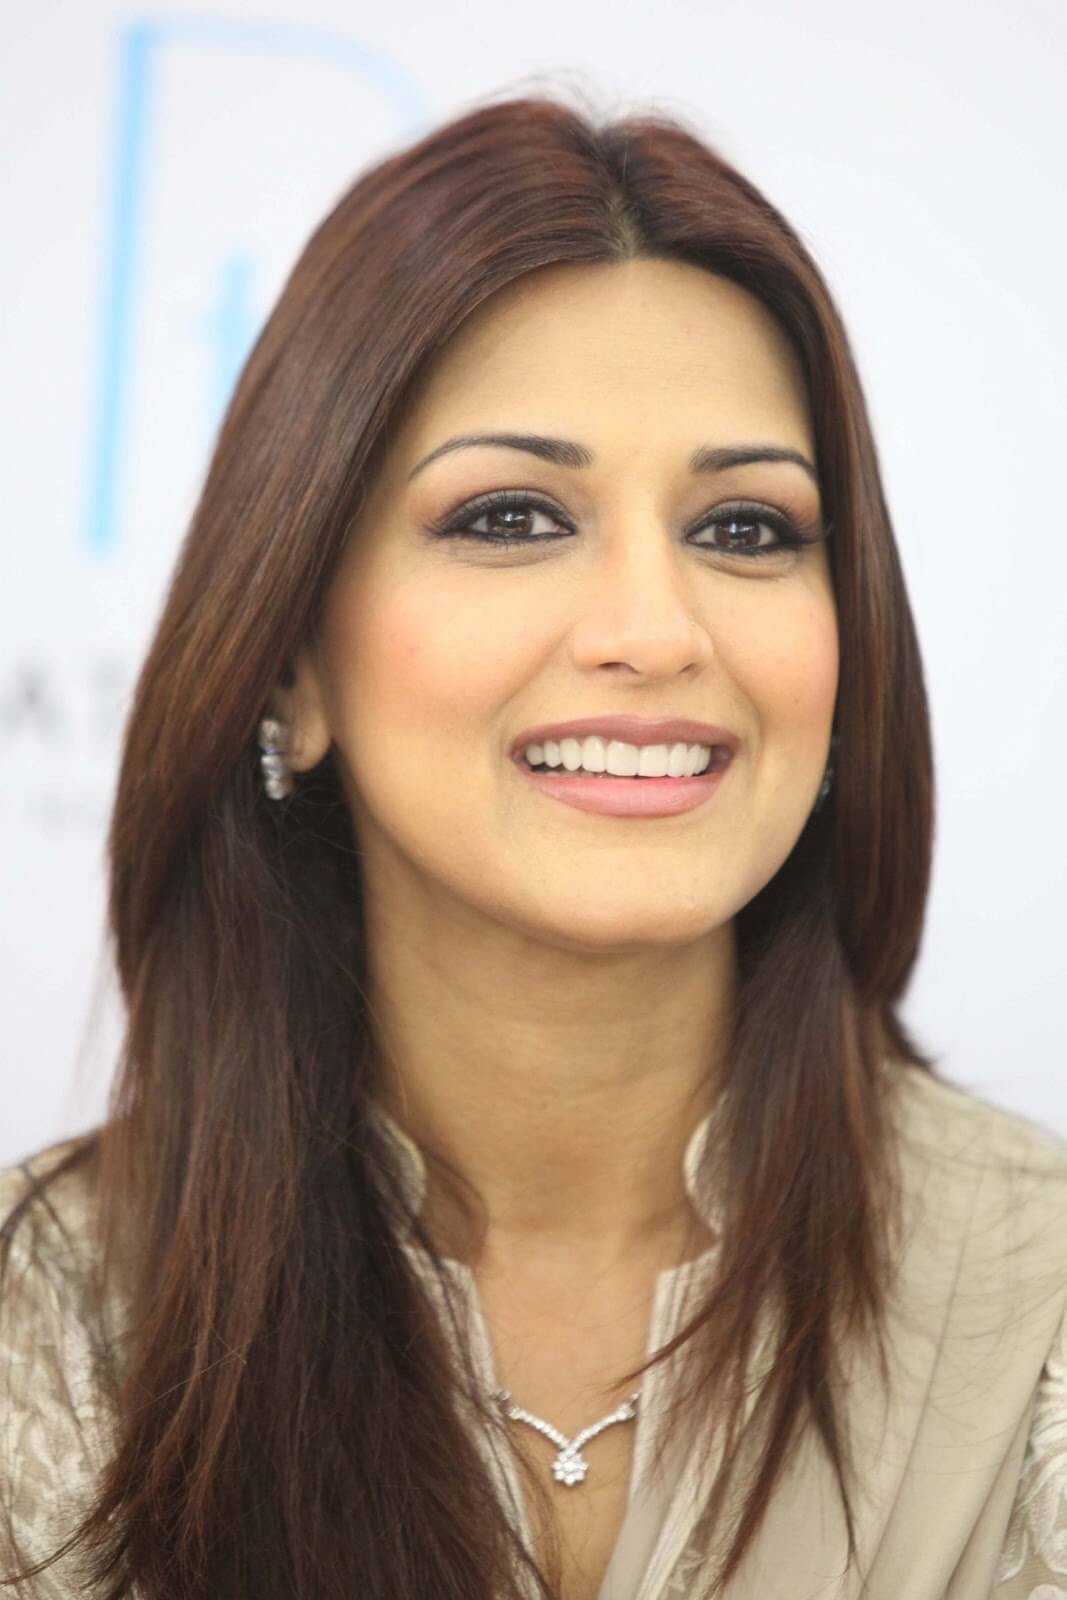 Sonali Bendre Cancer, Death, Photos(image), Family, Husband, Biography, Date Of Birth, Movies, Latest News, Haircut, Net Worth, Married, Education, Son, Awards, Instagram, Wiki, Twitter, Faceb ( (69)